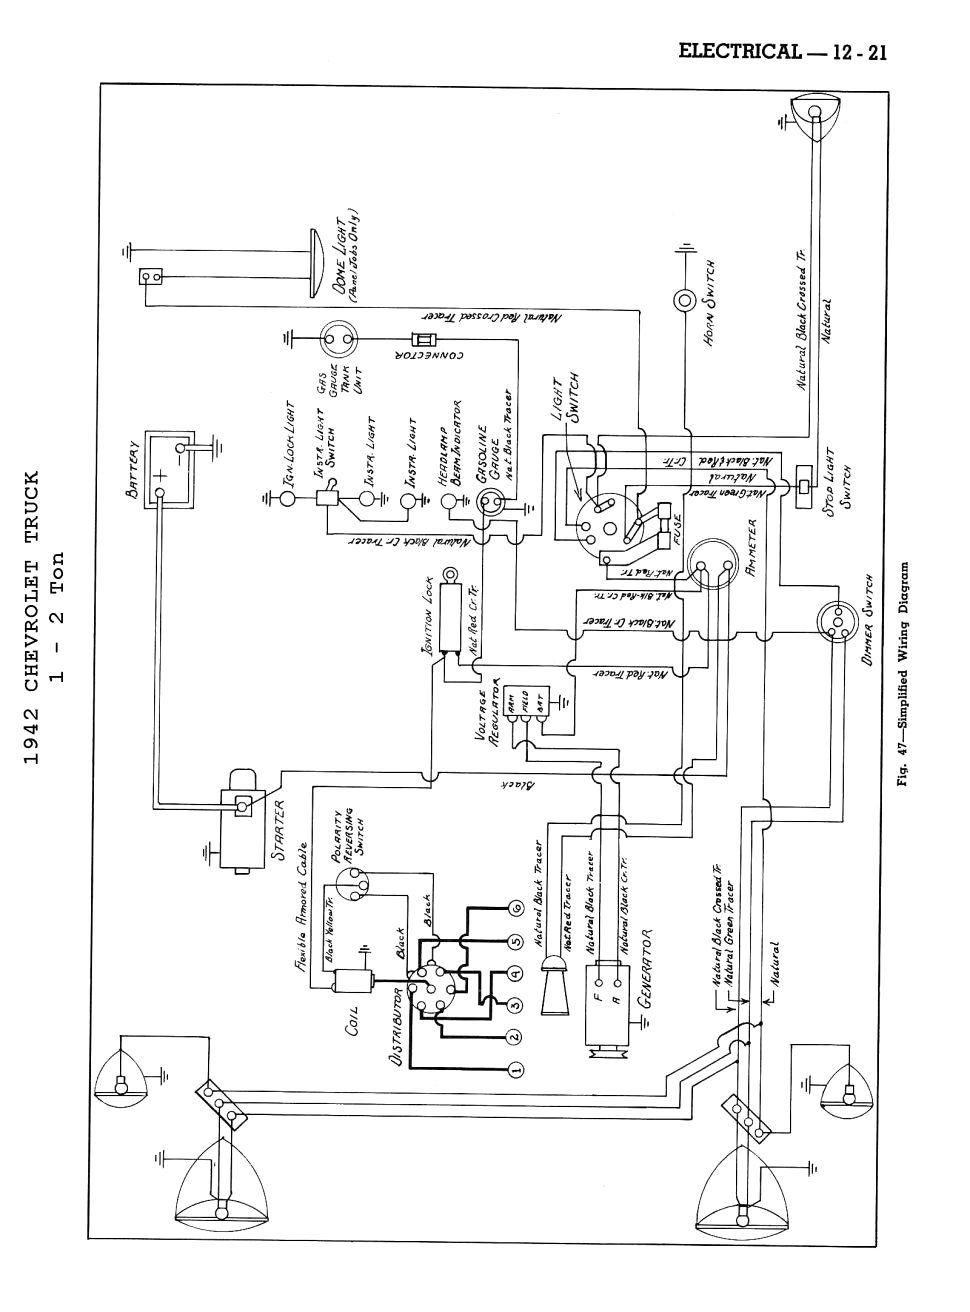 suburban rv thermostat wiring diagram